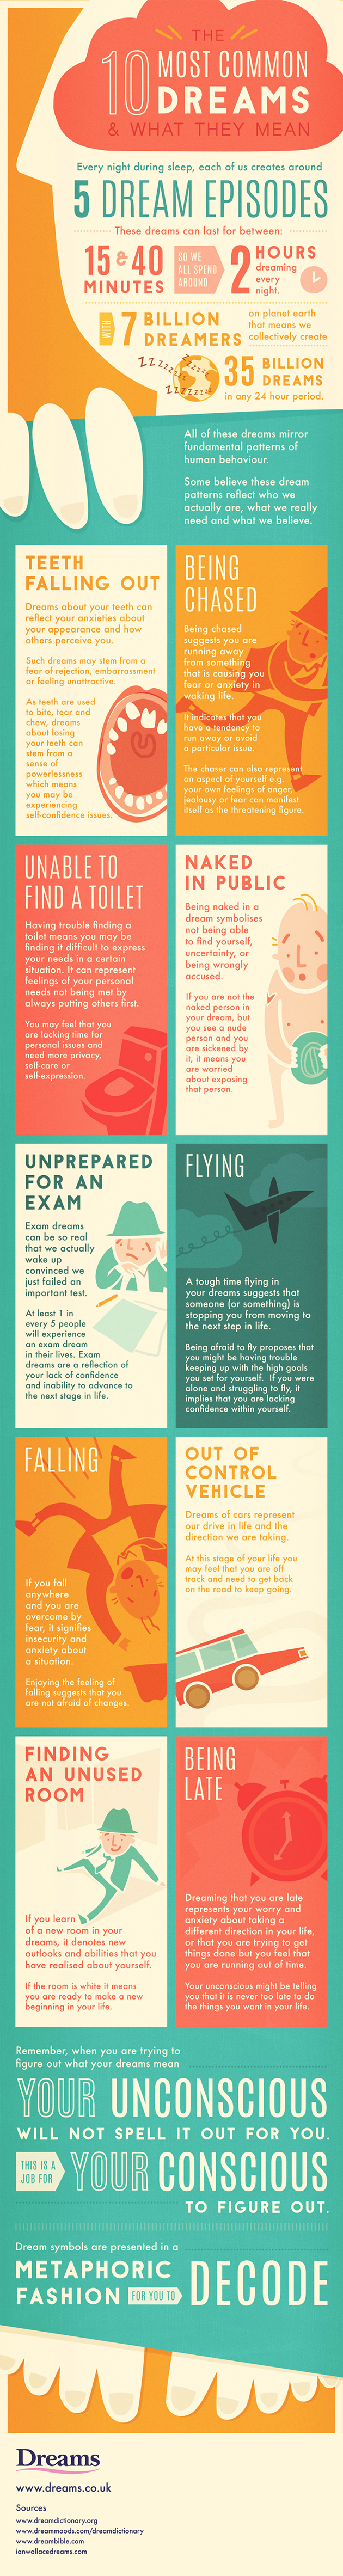 What-Do-Your-Dreams-Mean-Infographic